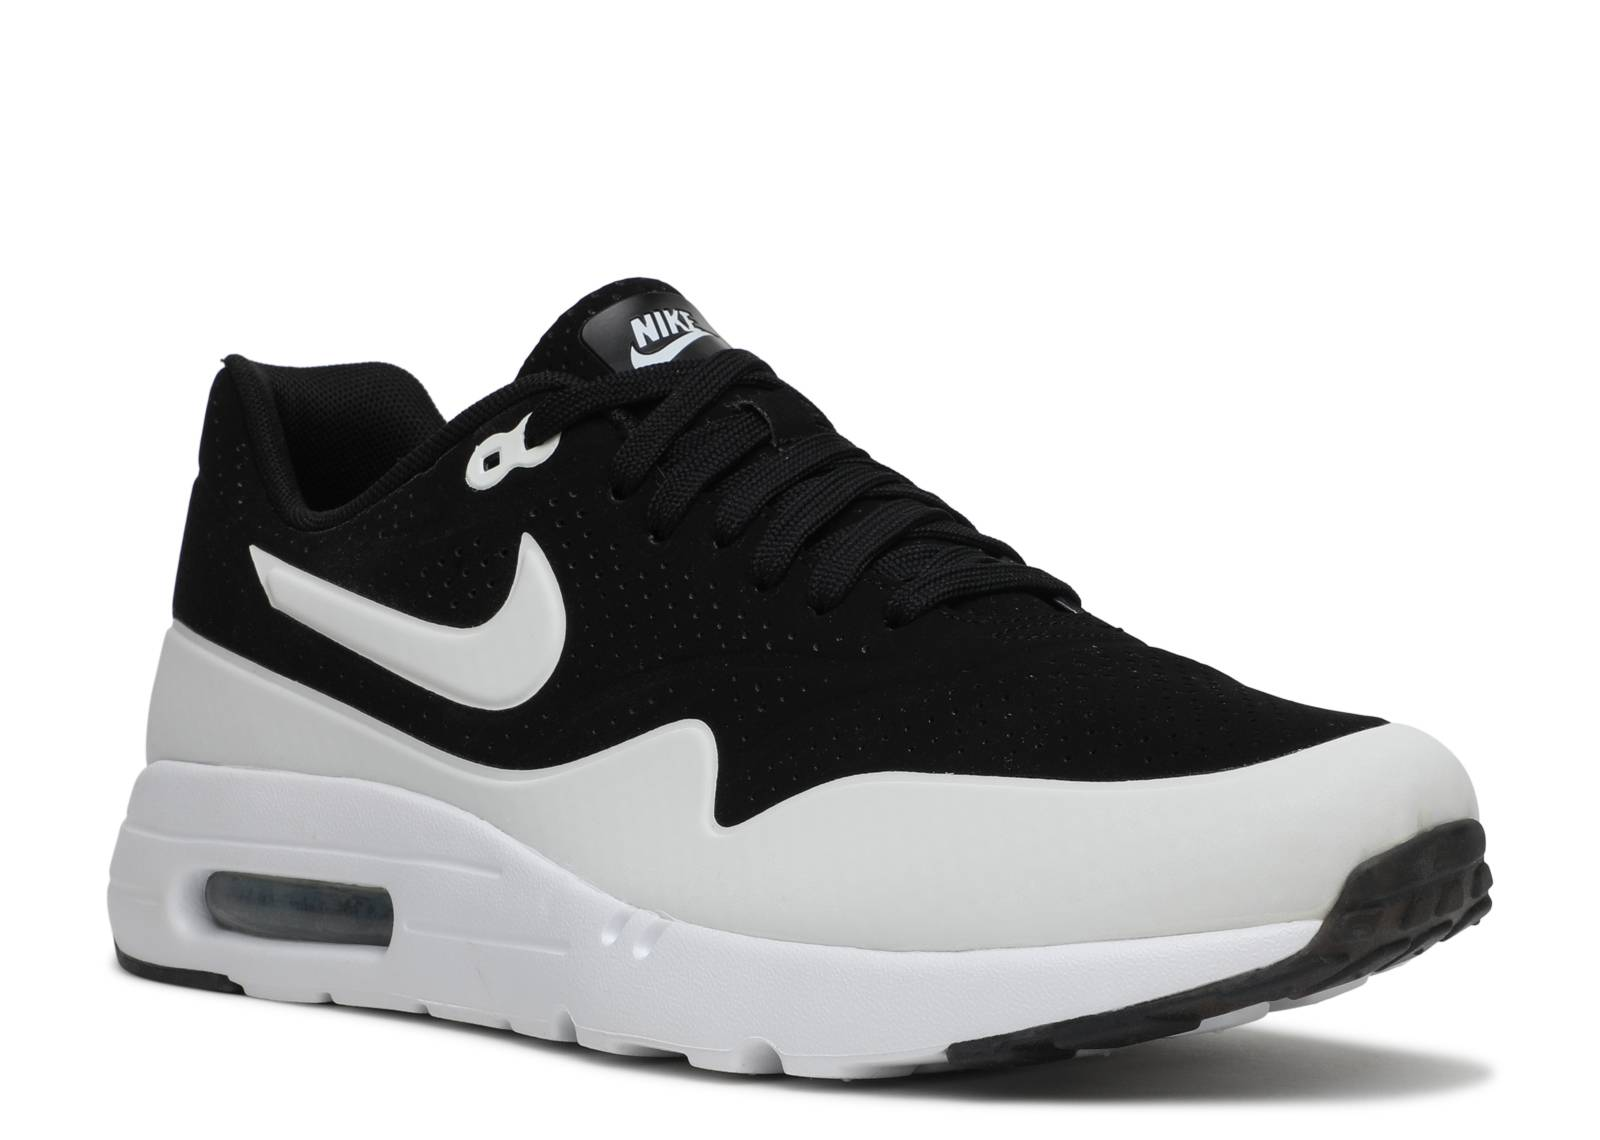 air max 1 ultra moire nike 705297 001 black white. Black Bedroom Furniture Sets. Home Design Ideas